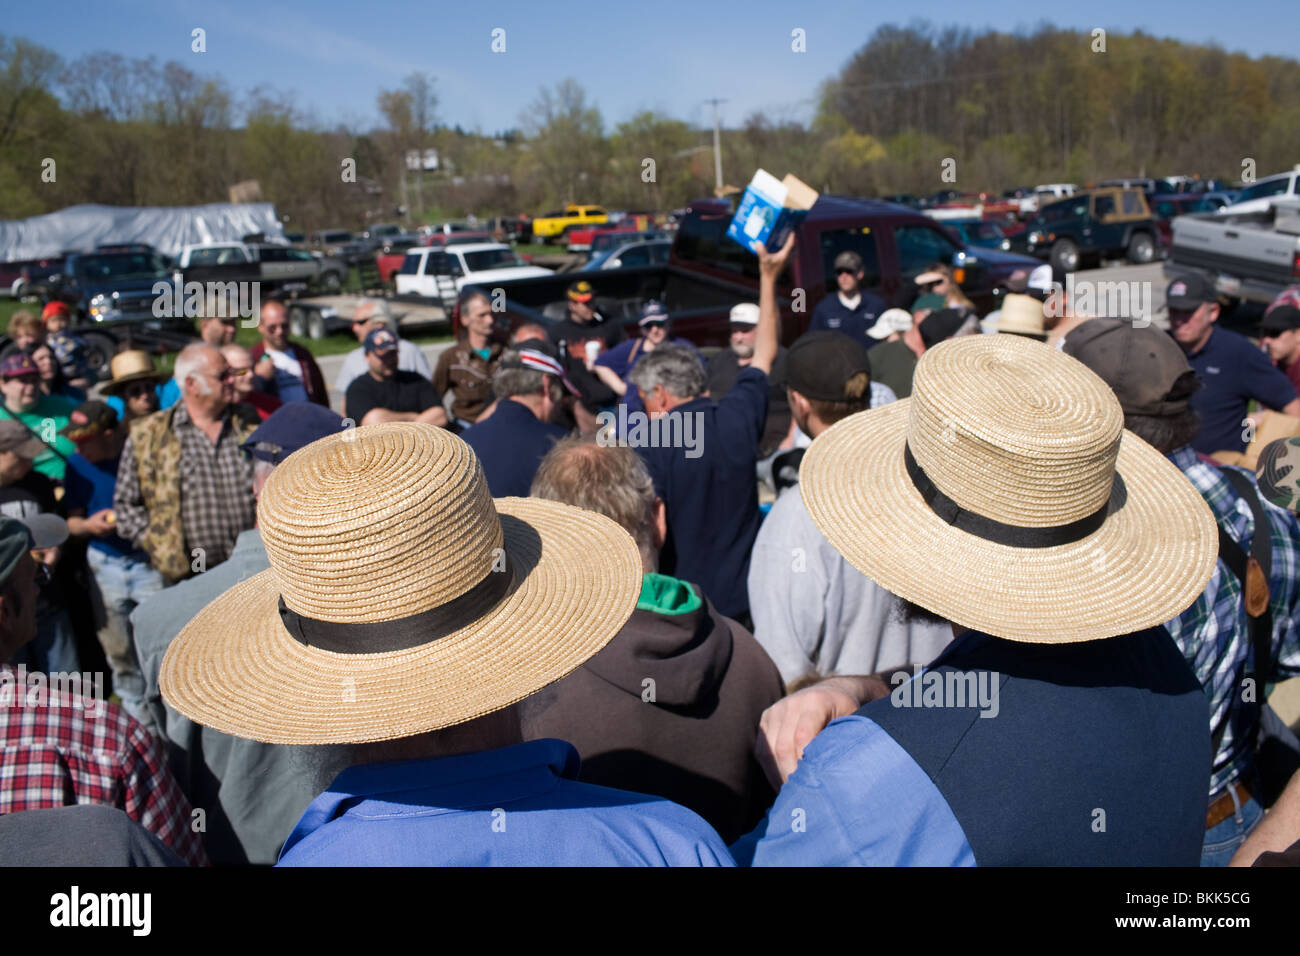 Amish men in straw hats at farm auction in central New York state ... 1a31b486c2a